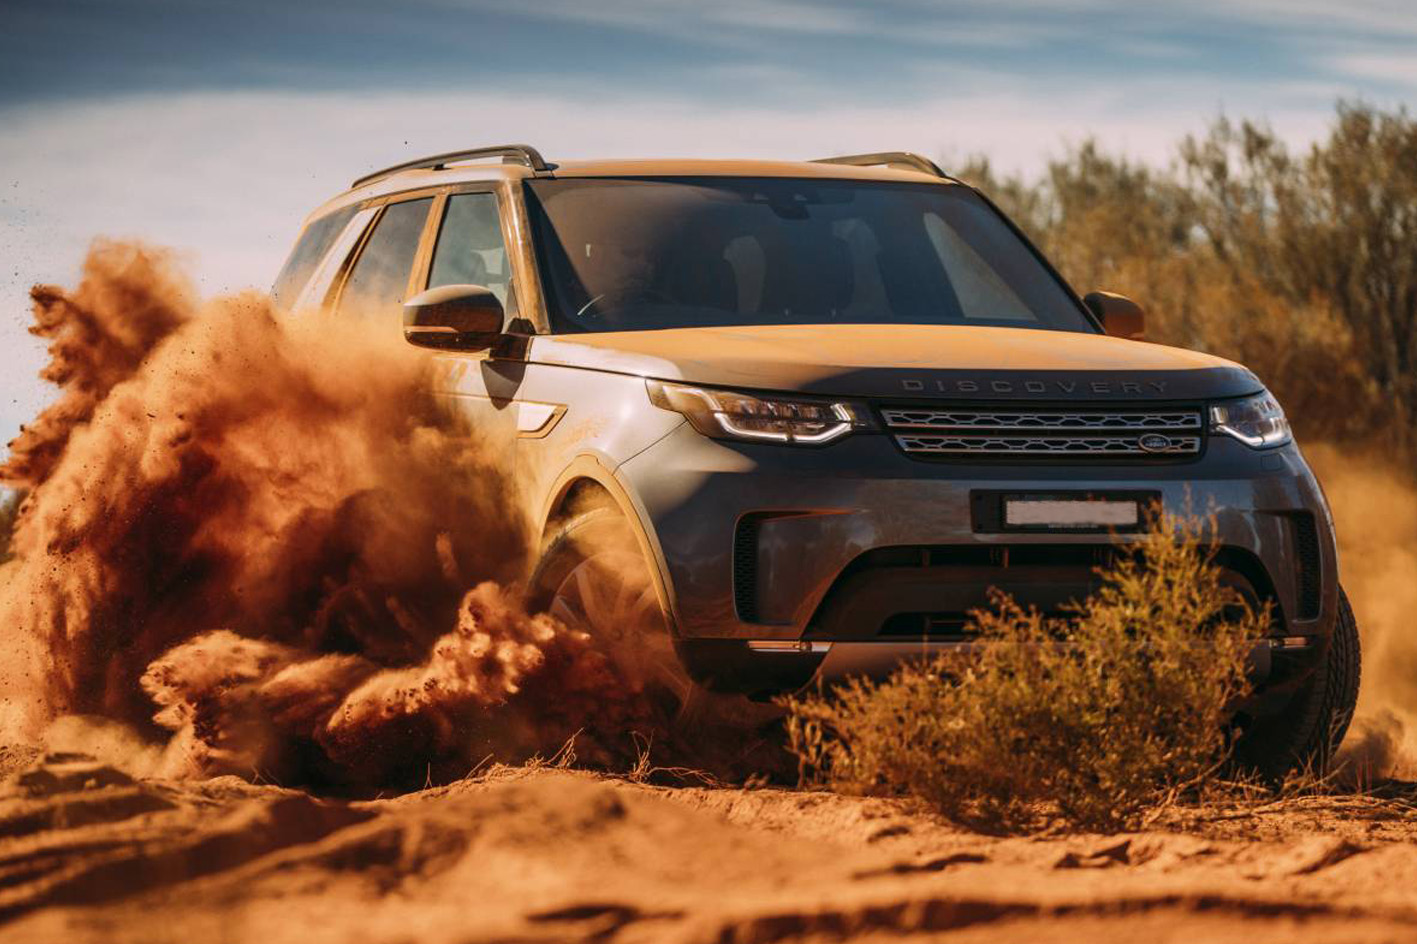 Land-Rover-Discovery-dust.jpg